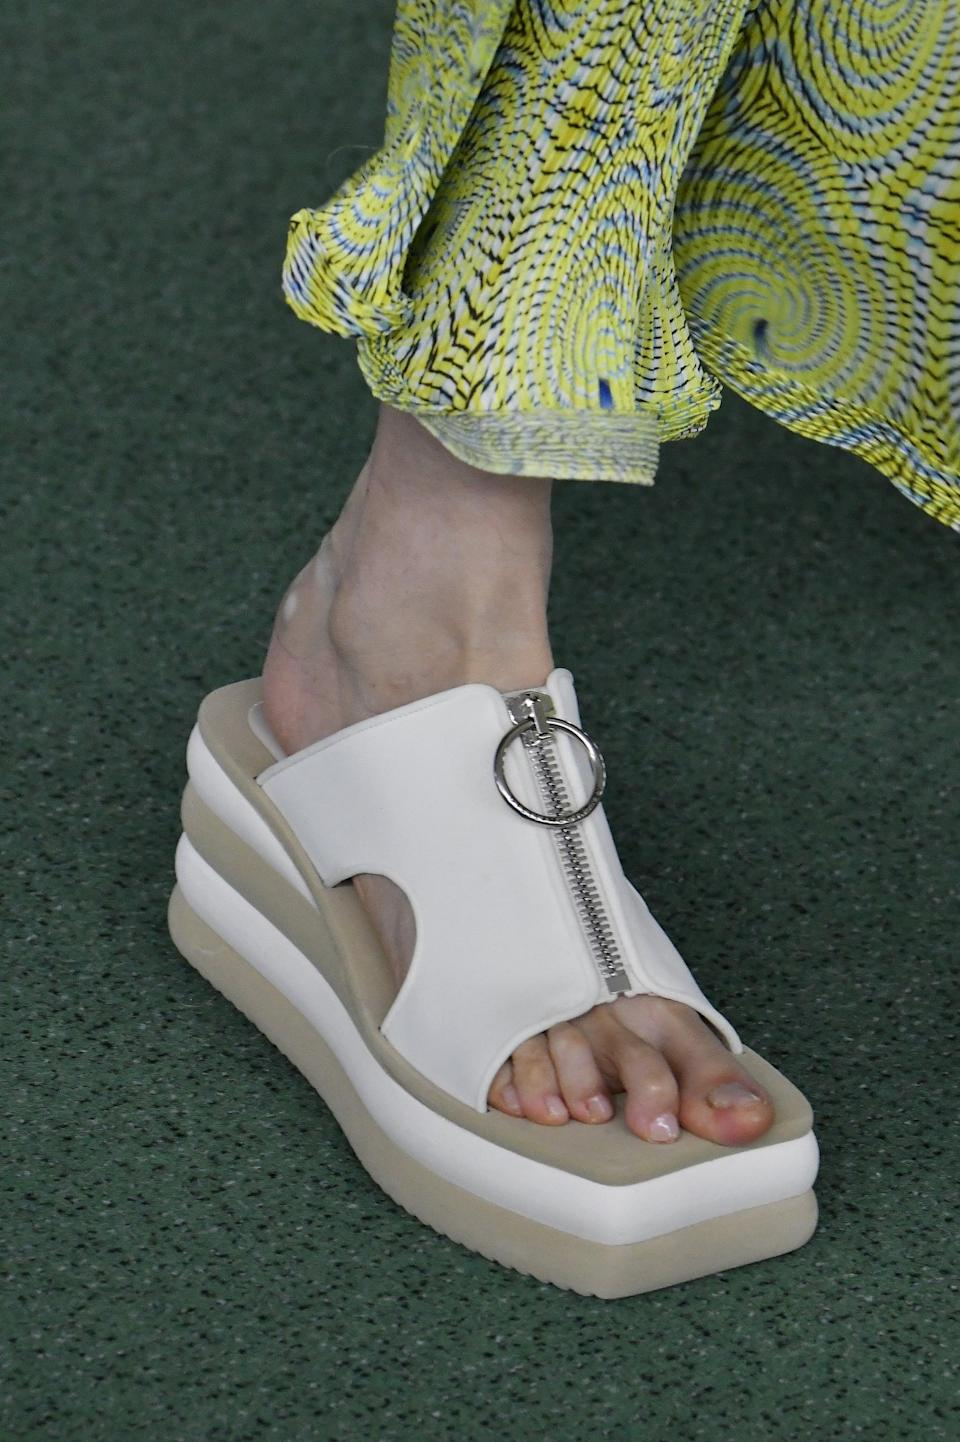 <p>Shoes from Stella McCartney spring 2022 collection.</p>